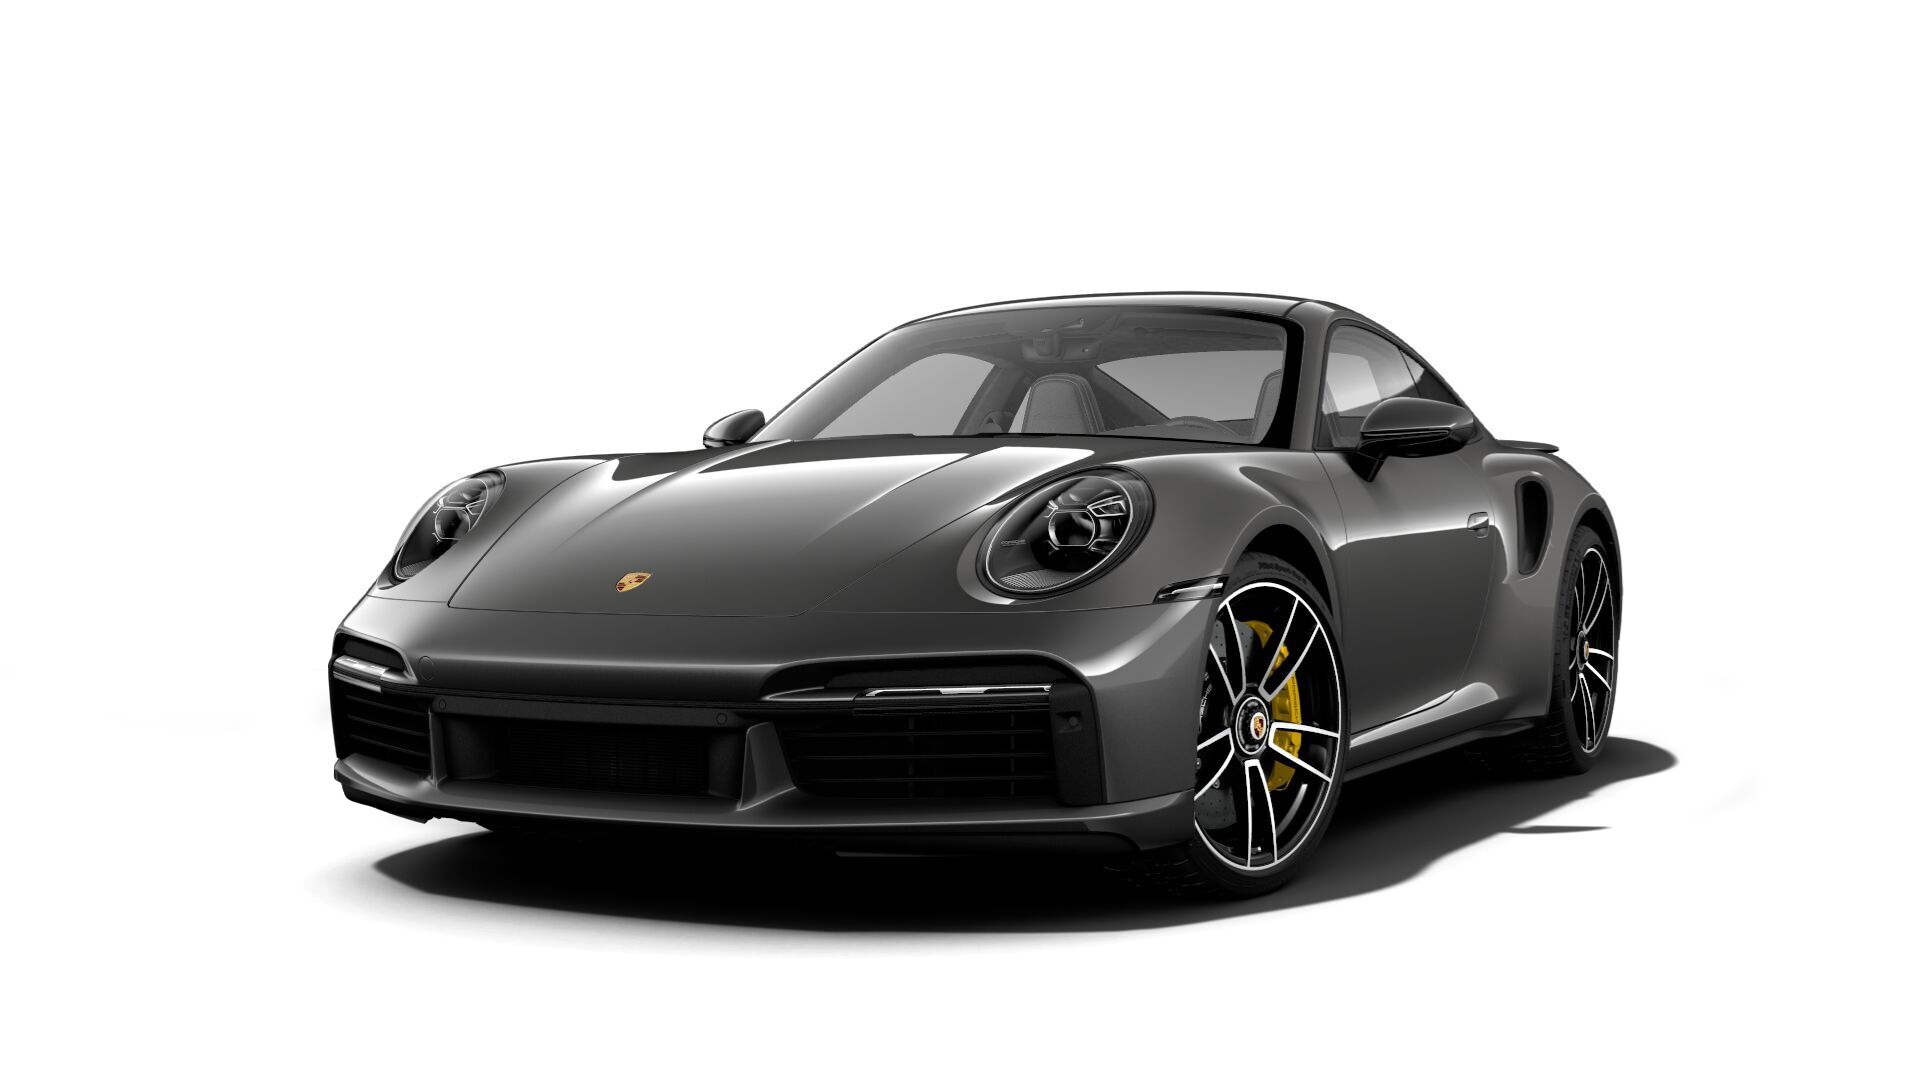 2021 Porsche 911 Turbo S Full Specs Features And Price Carbuzz